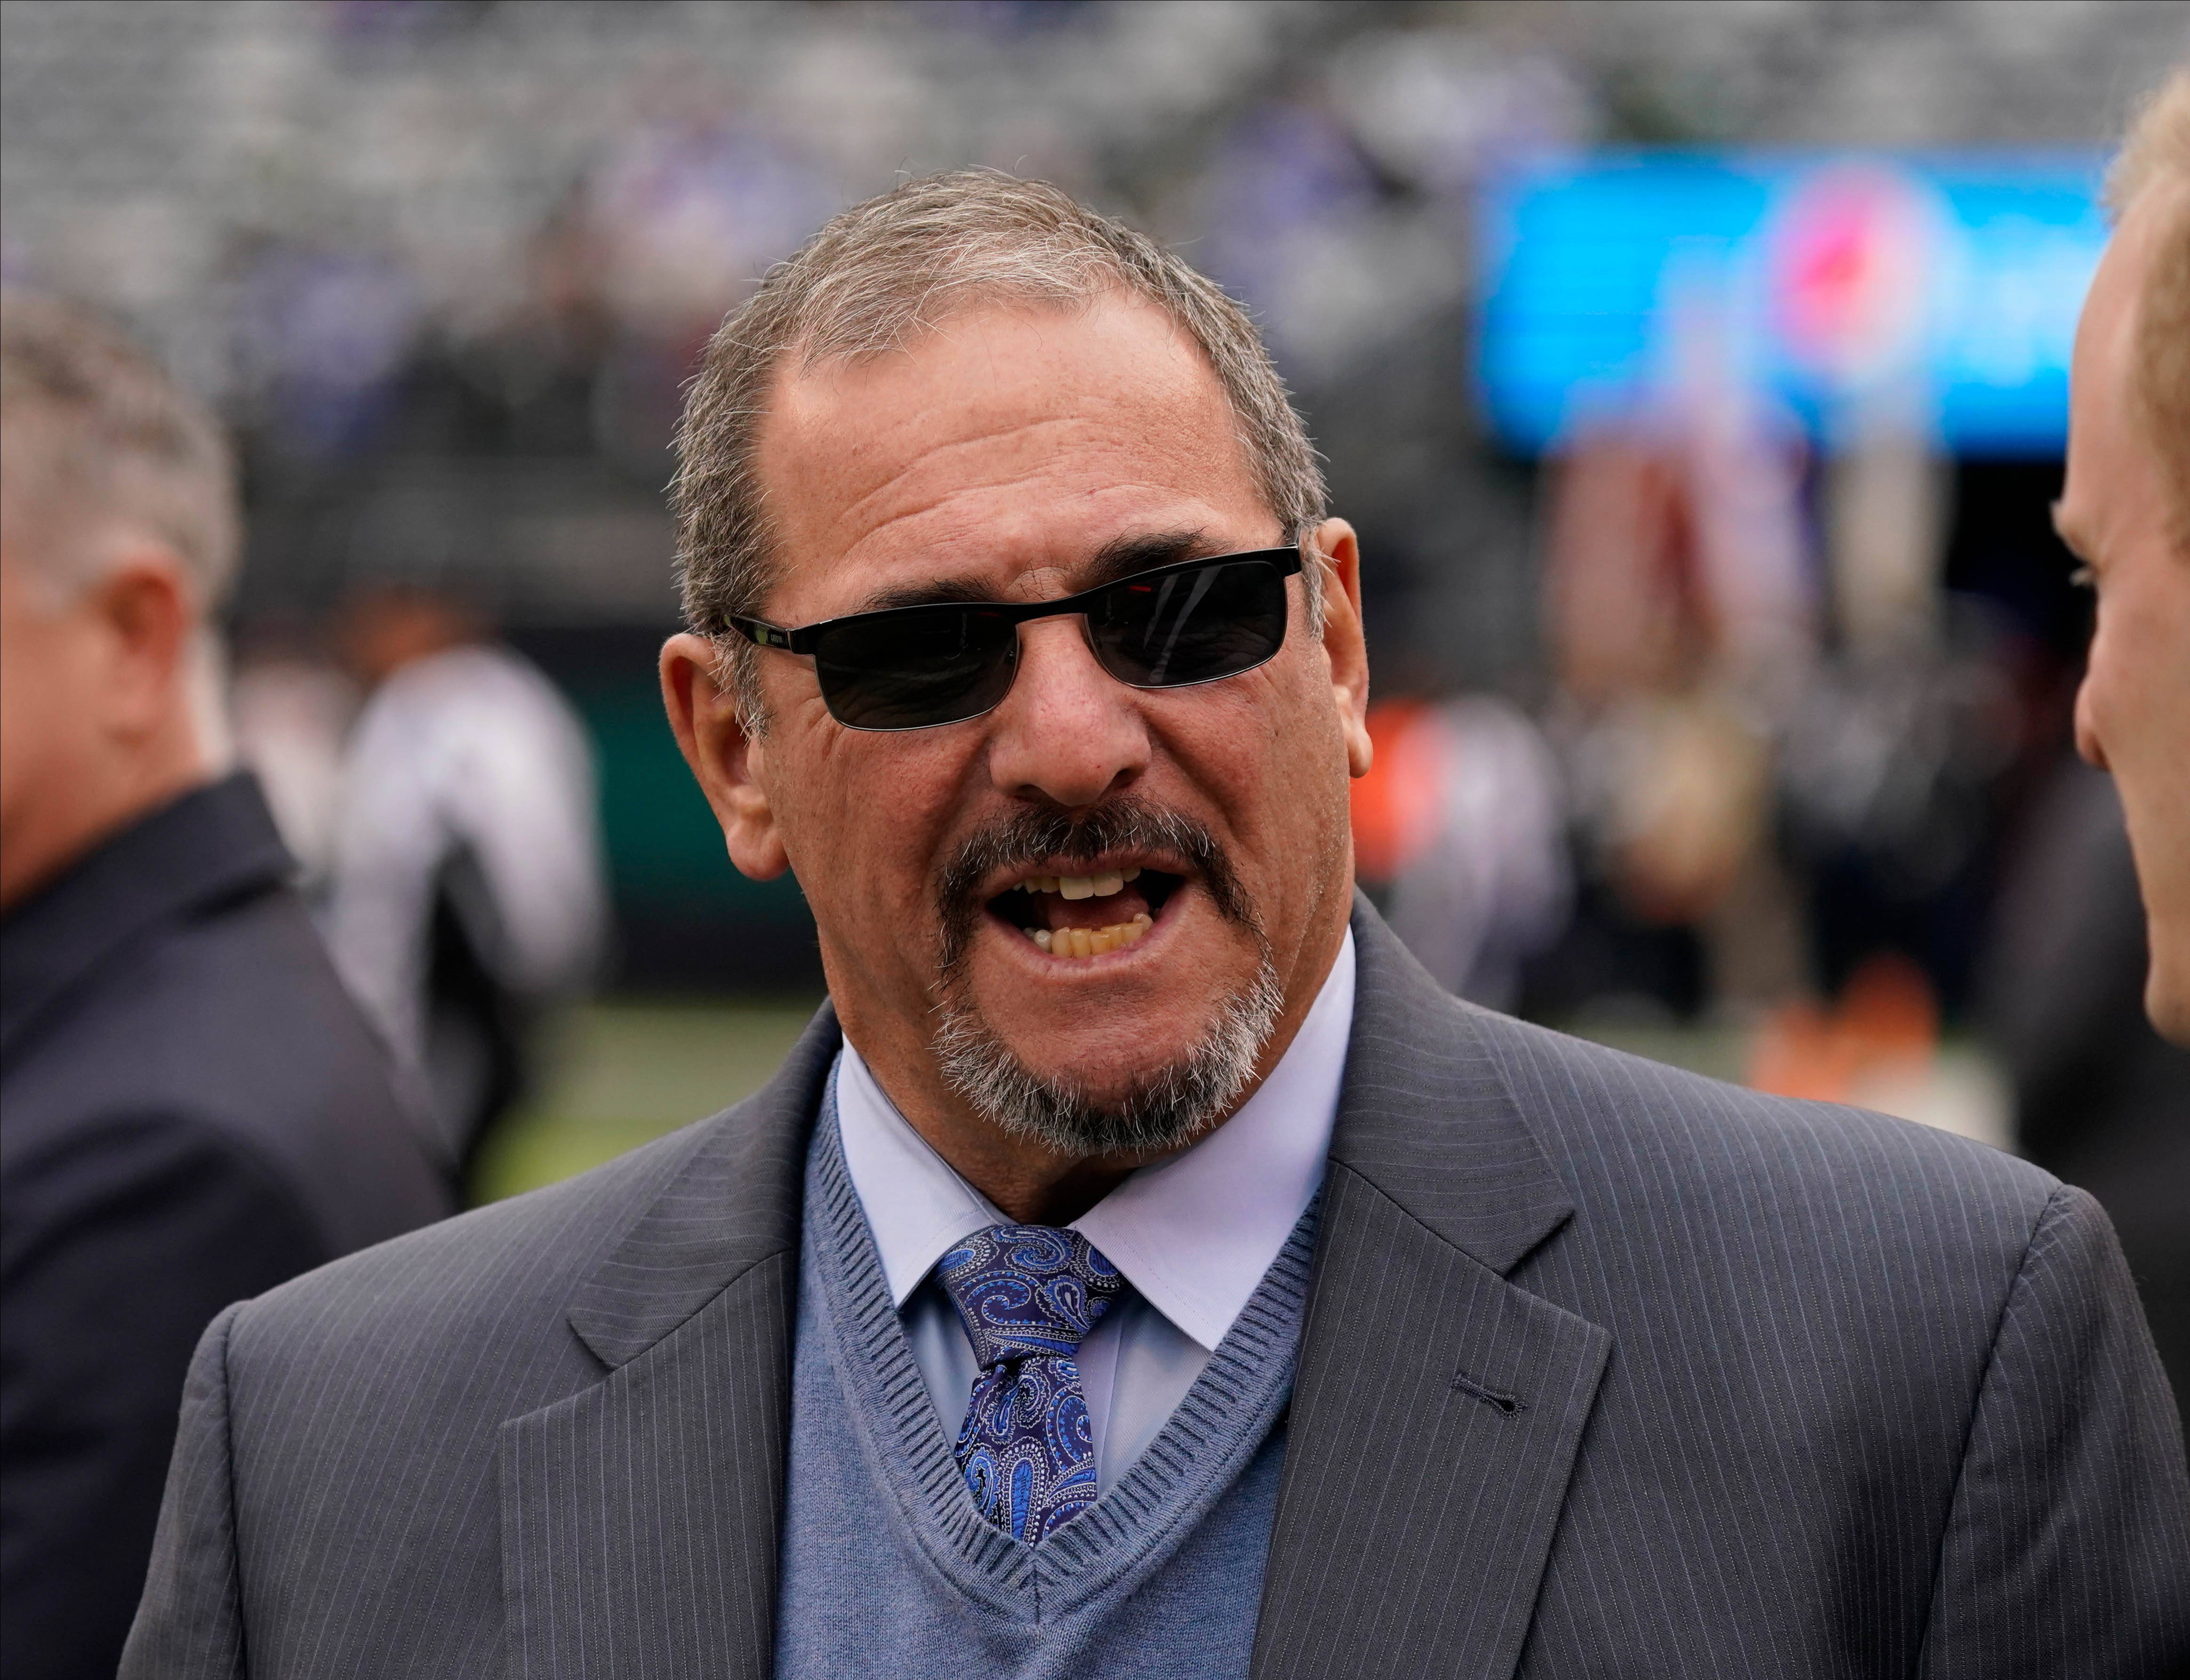 Dave Gettleman shares details on Giants scouting department's shift toward analytics